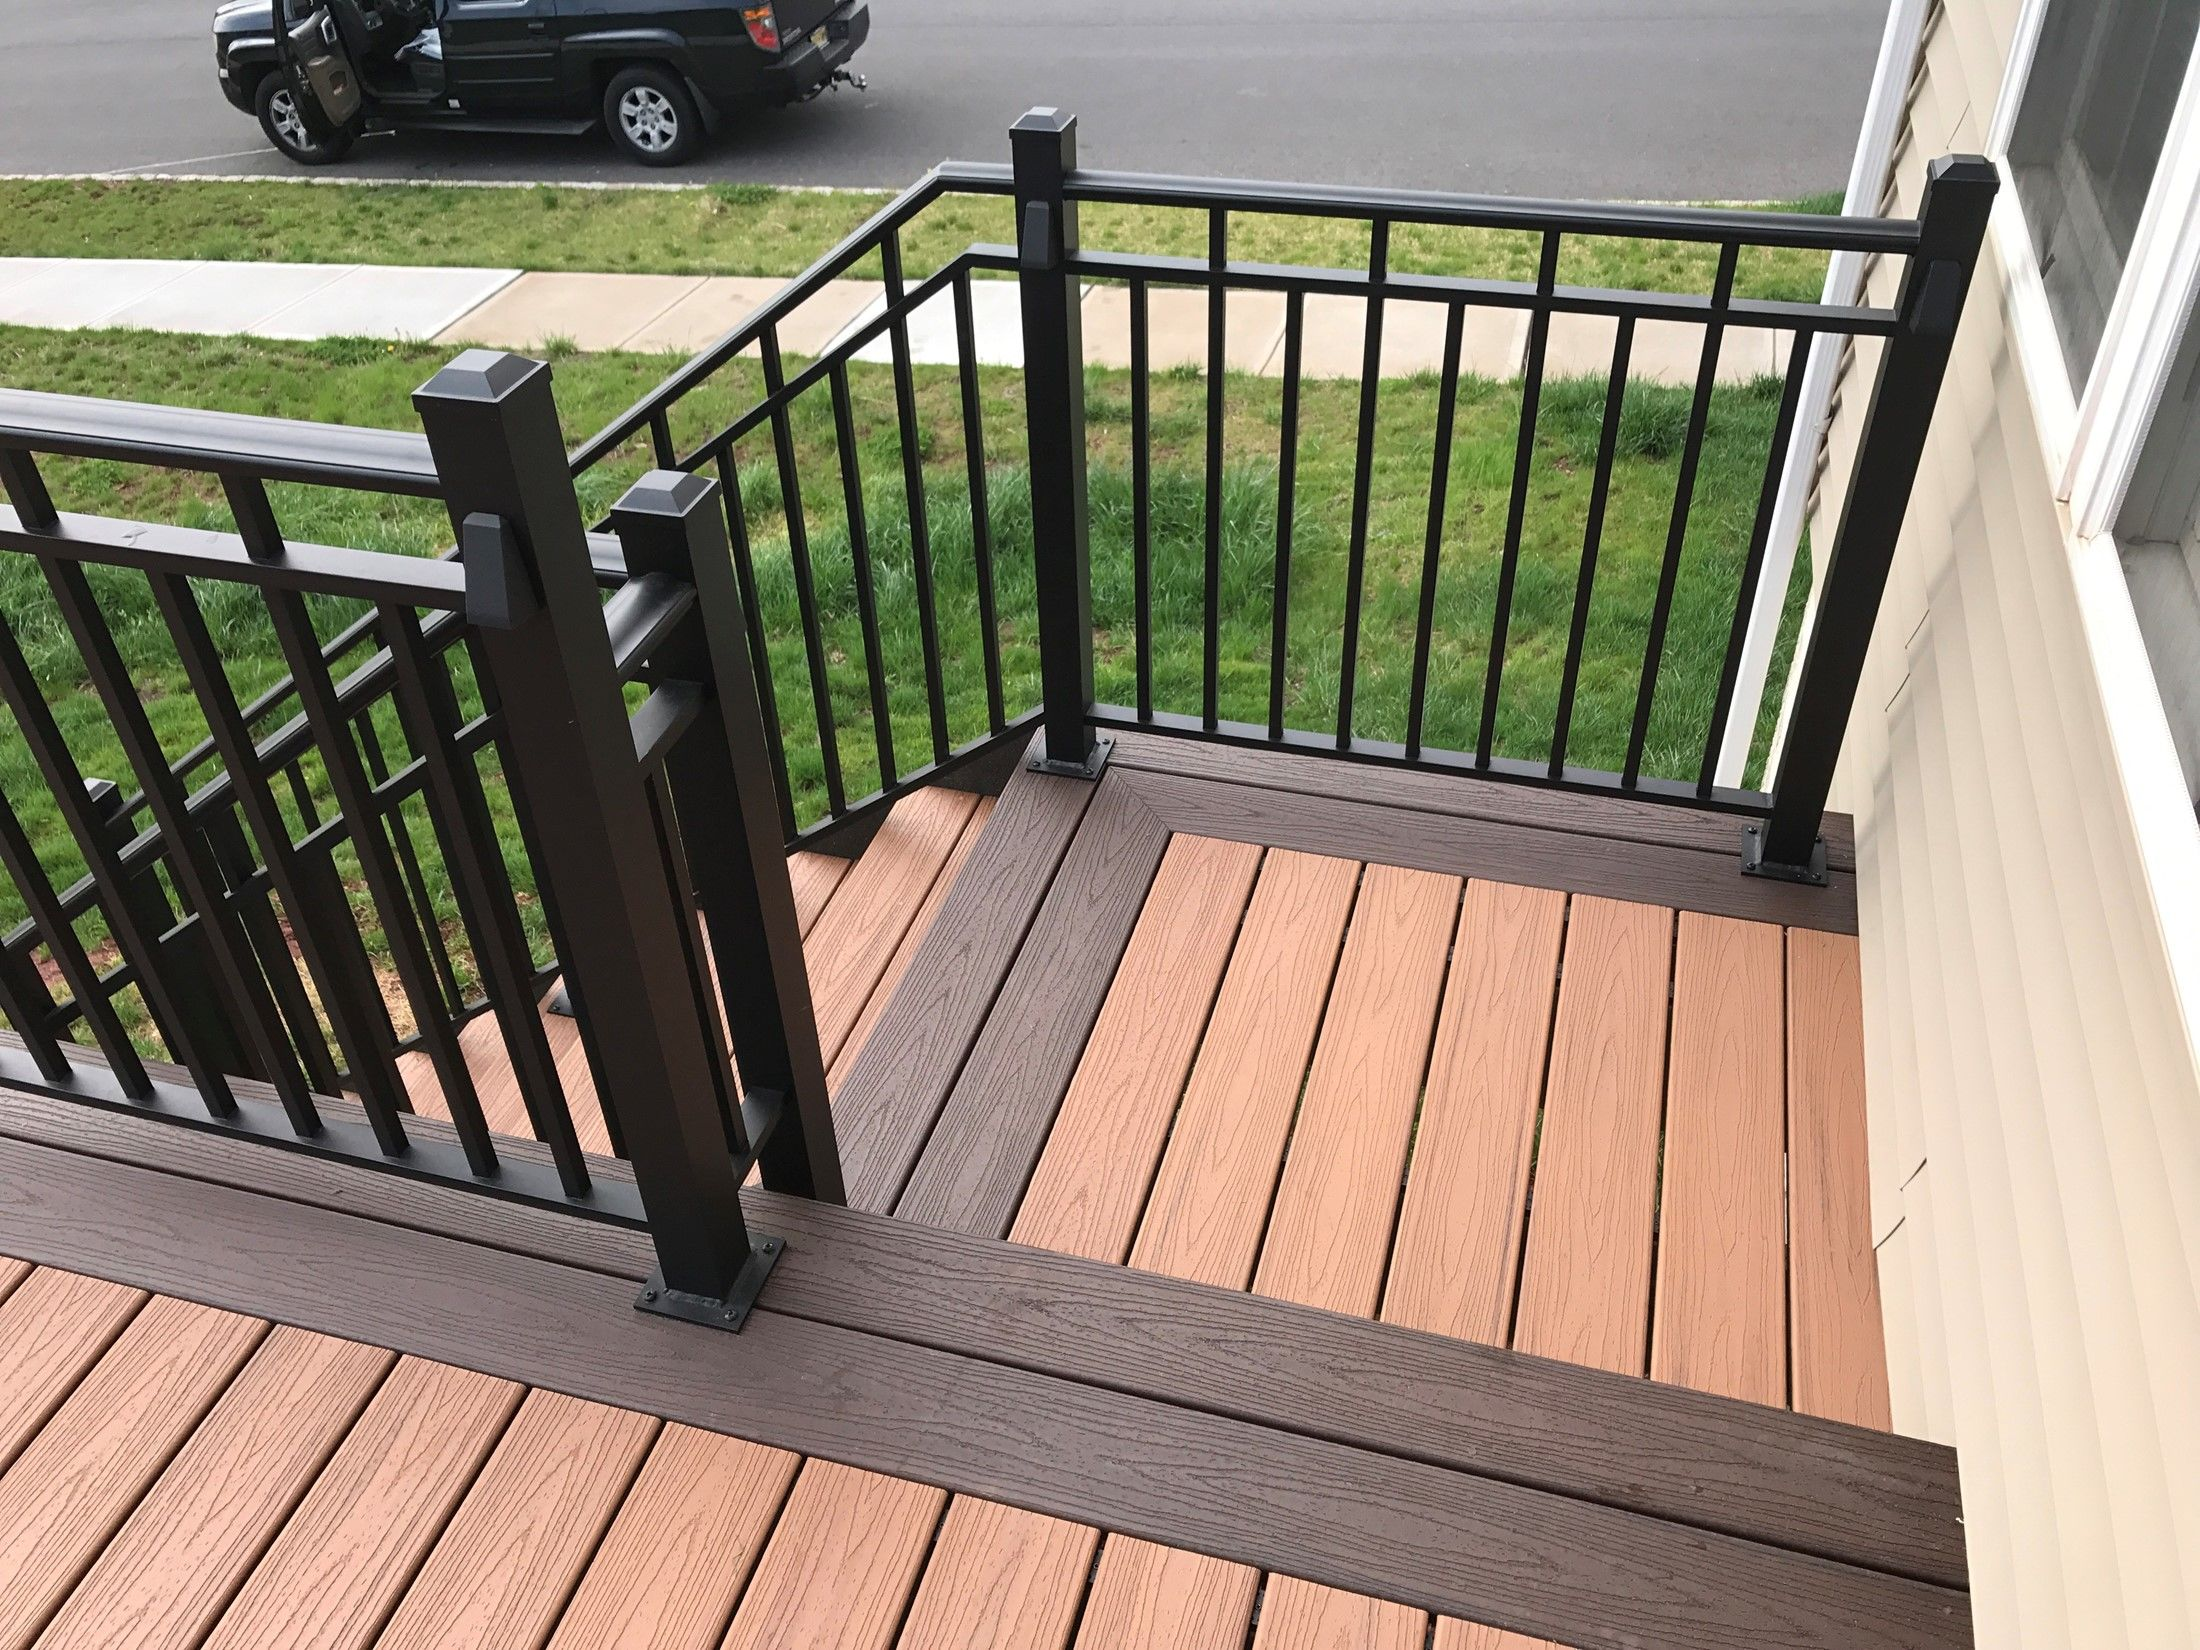 Custom curved deck with aluminum railings - Picture 7556